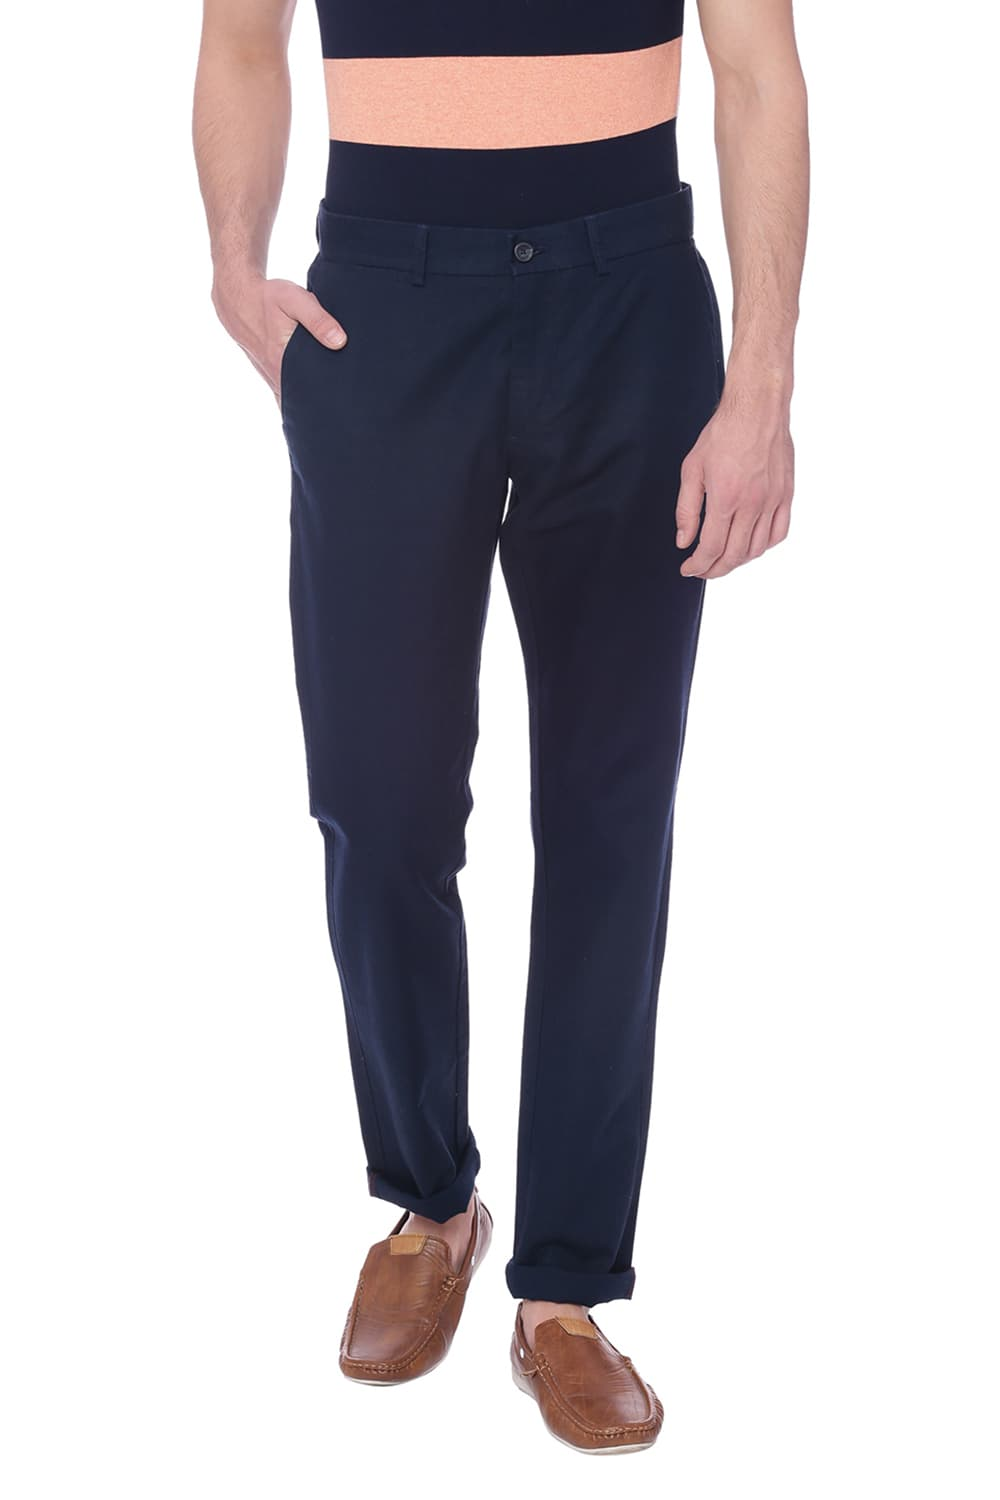 Basics Slim Fit Dress Blues Navy Trouser-18btr38366